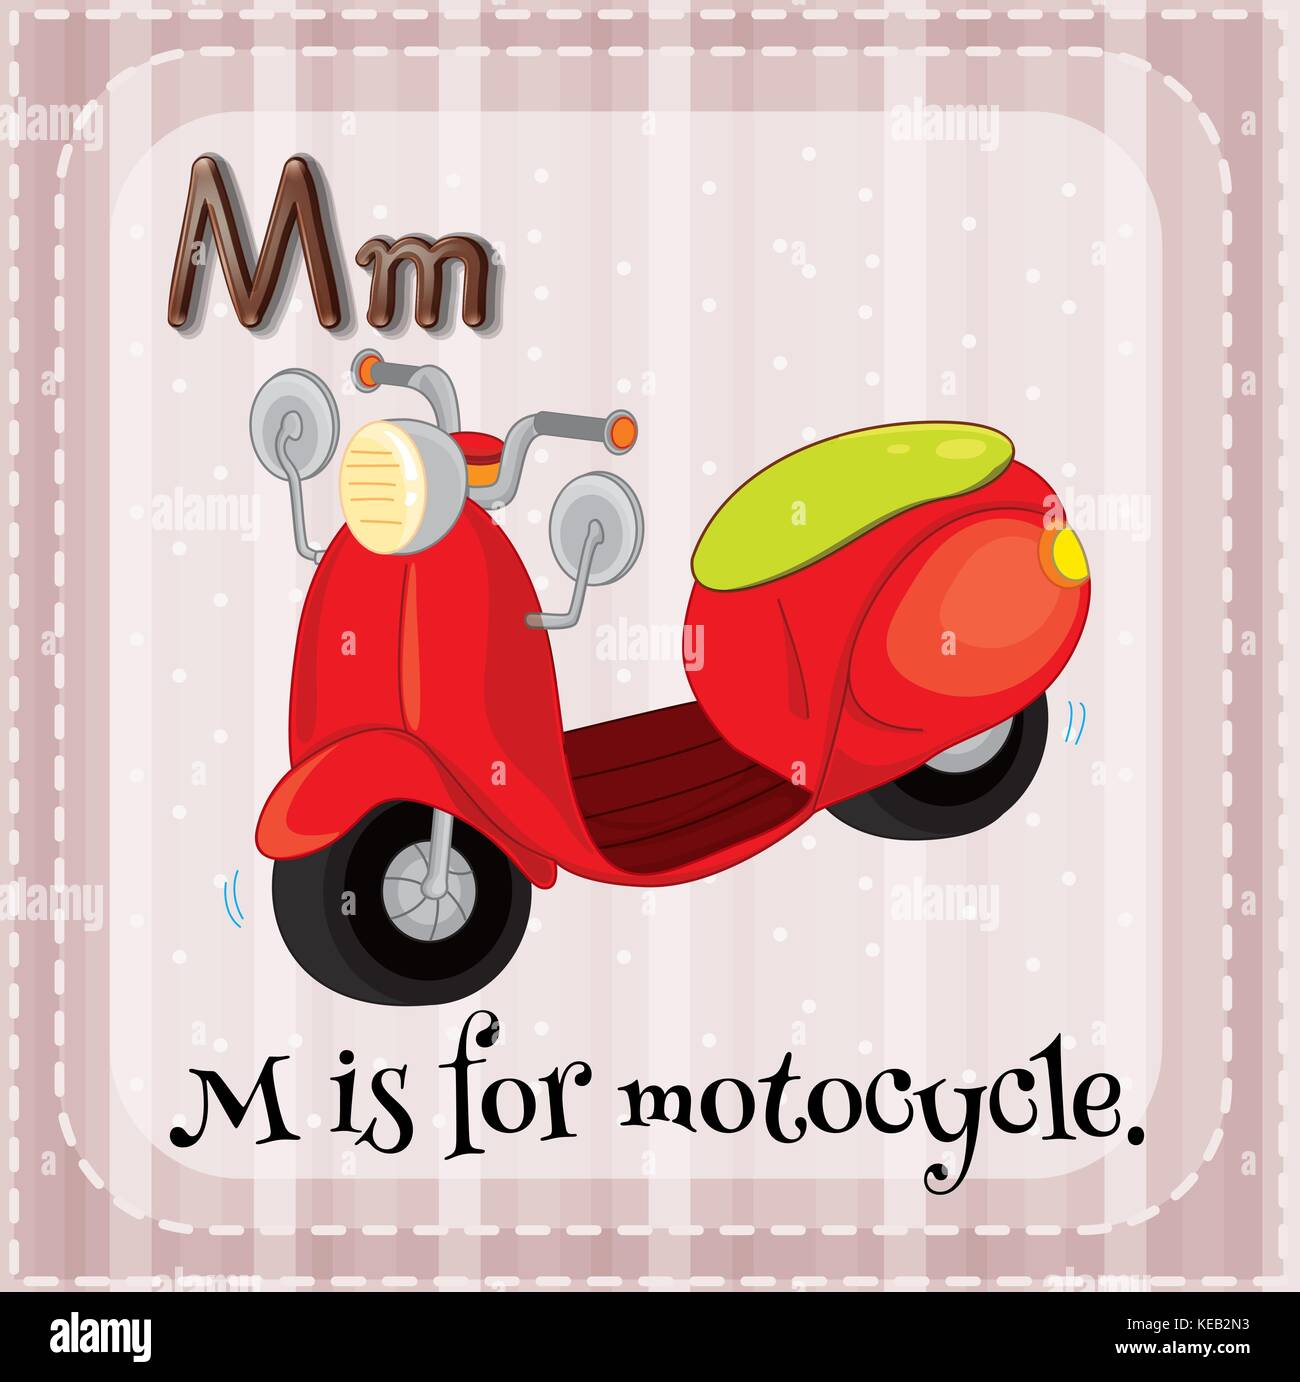 Motorcycle dating letter